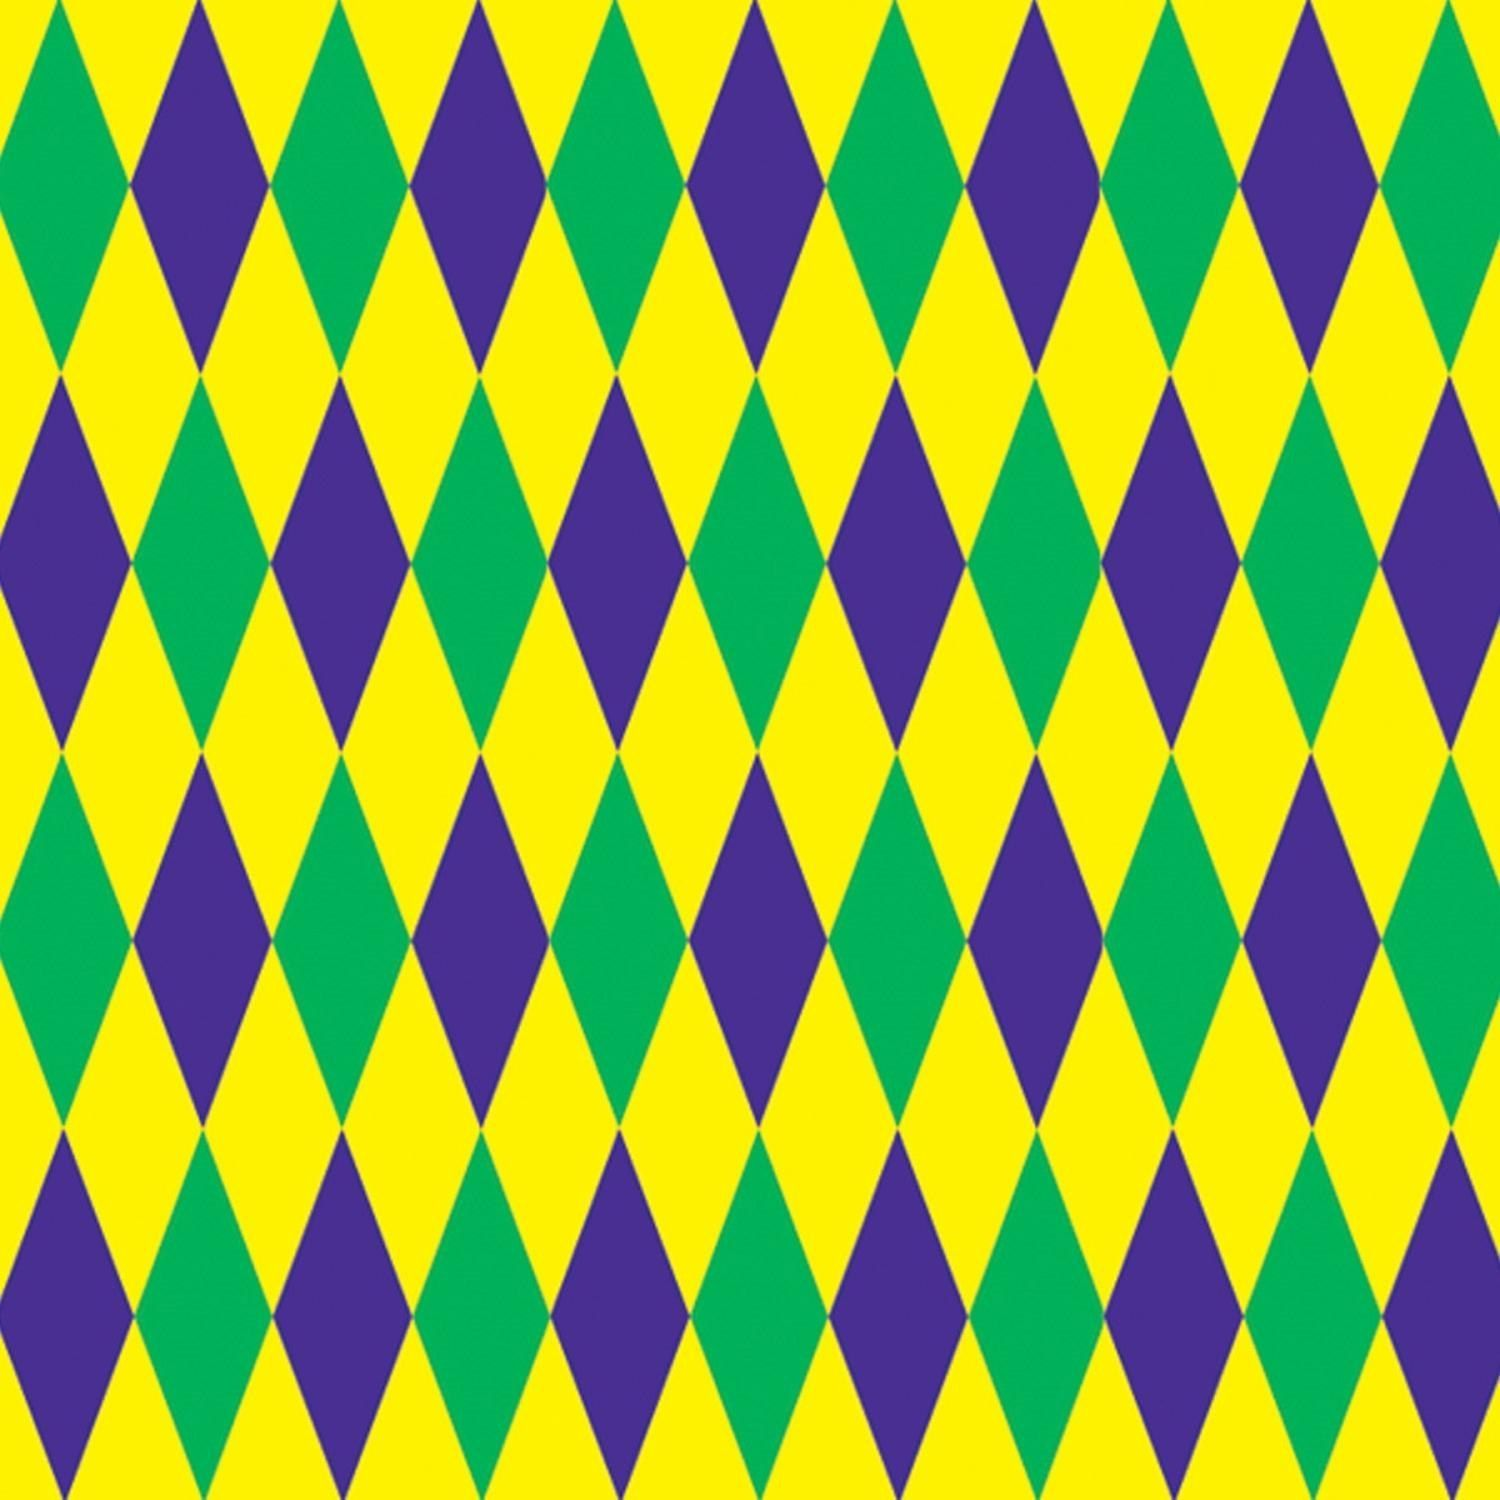 Pack of 6 Mardi-Gras Harlequin Photo Backdrop Wall Decorations 4\' x ...